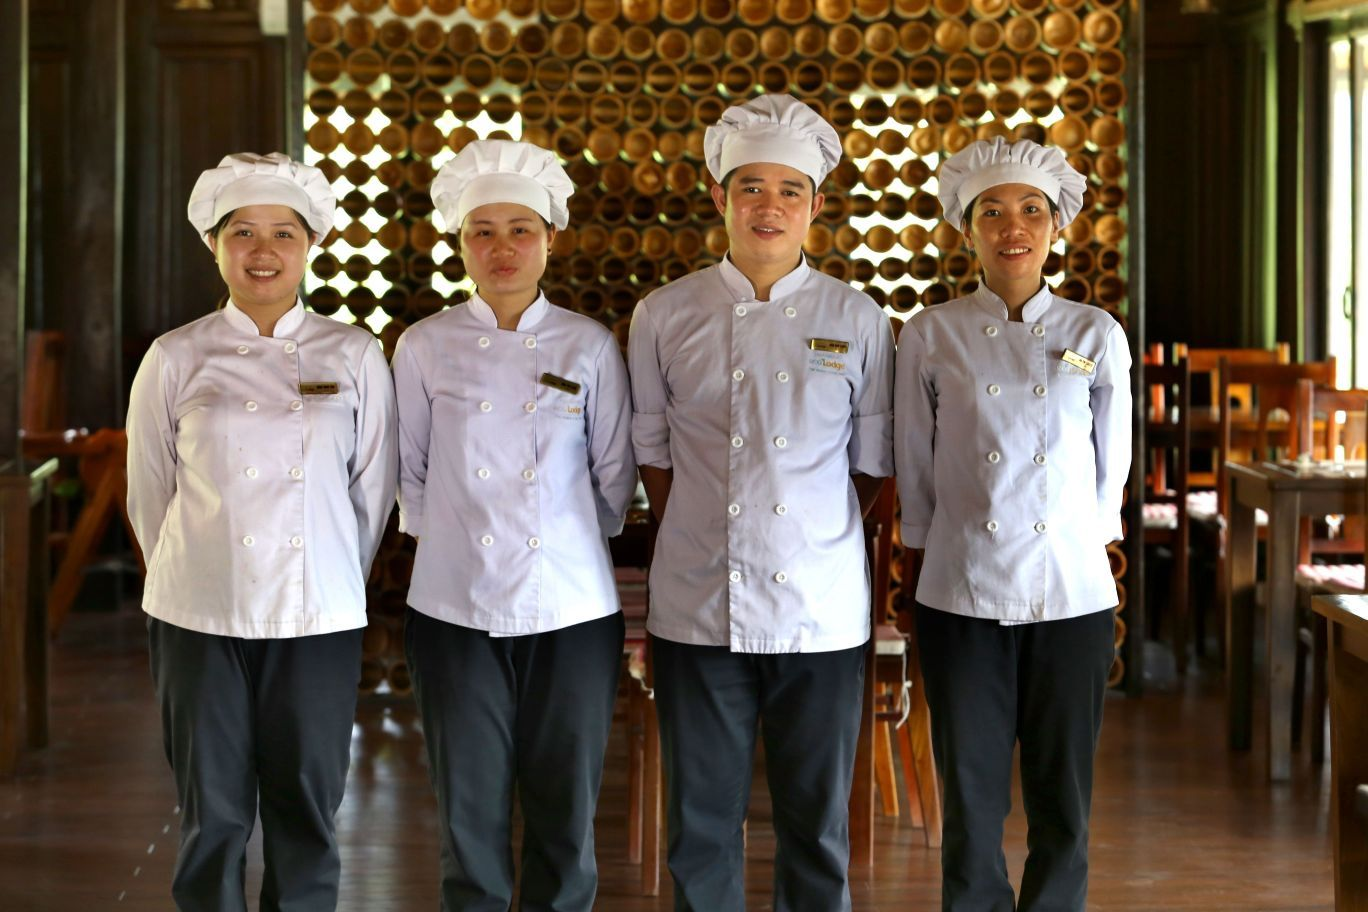 Mai Chau Ecolodge staff 01